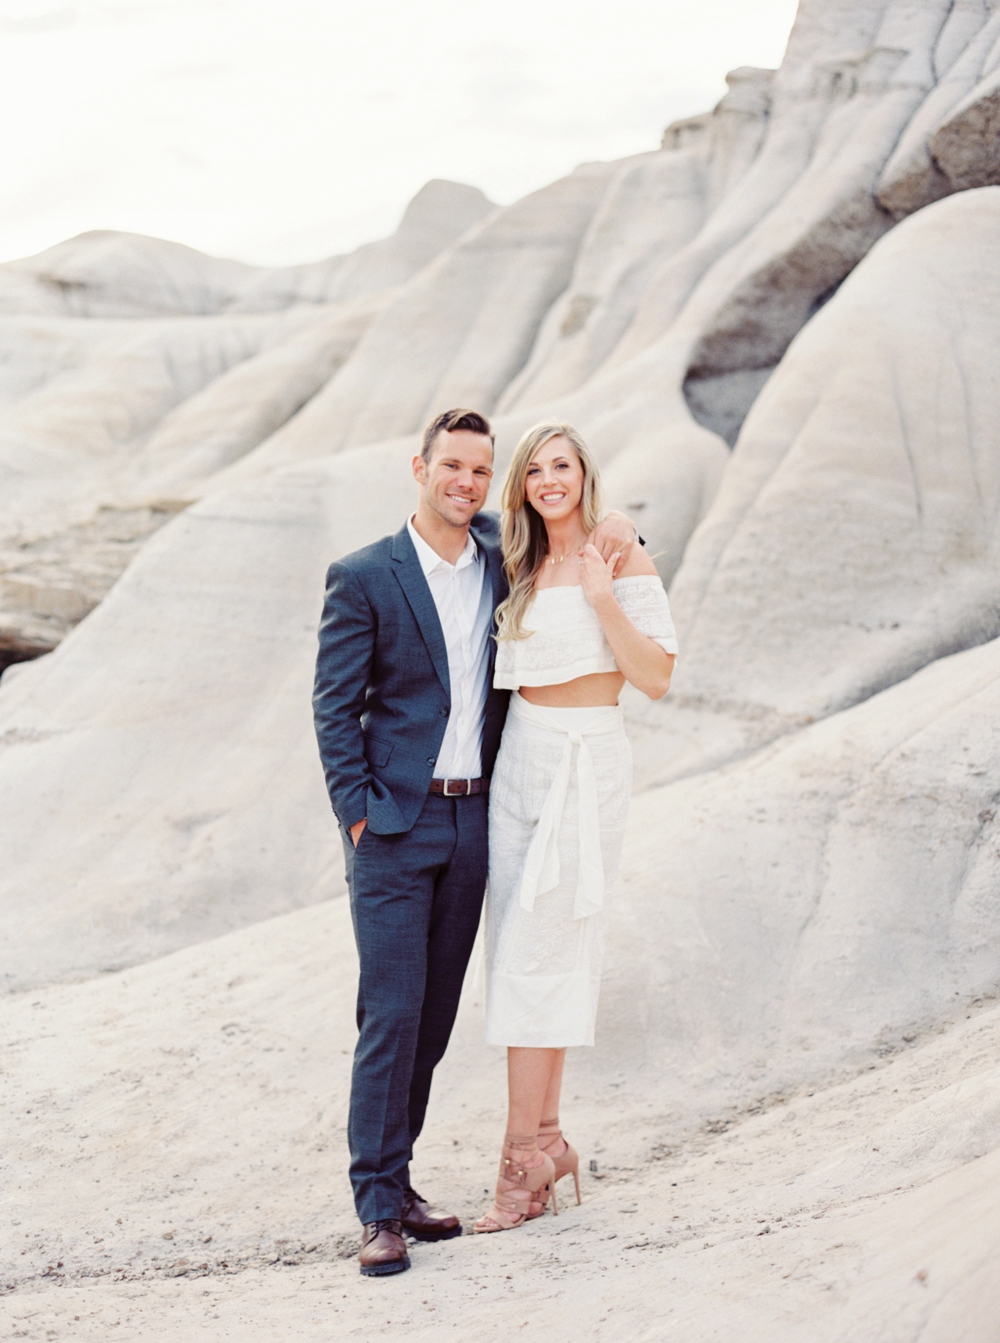 Badlands Drumheller Engagement Session | Calgary Wedding Photographers | boho engagement photography | styled engagement photos | Banff | Canmore